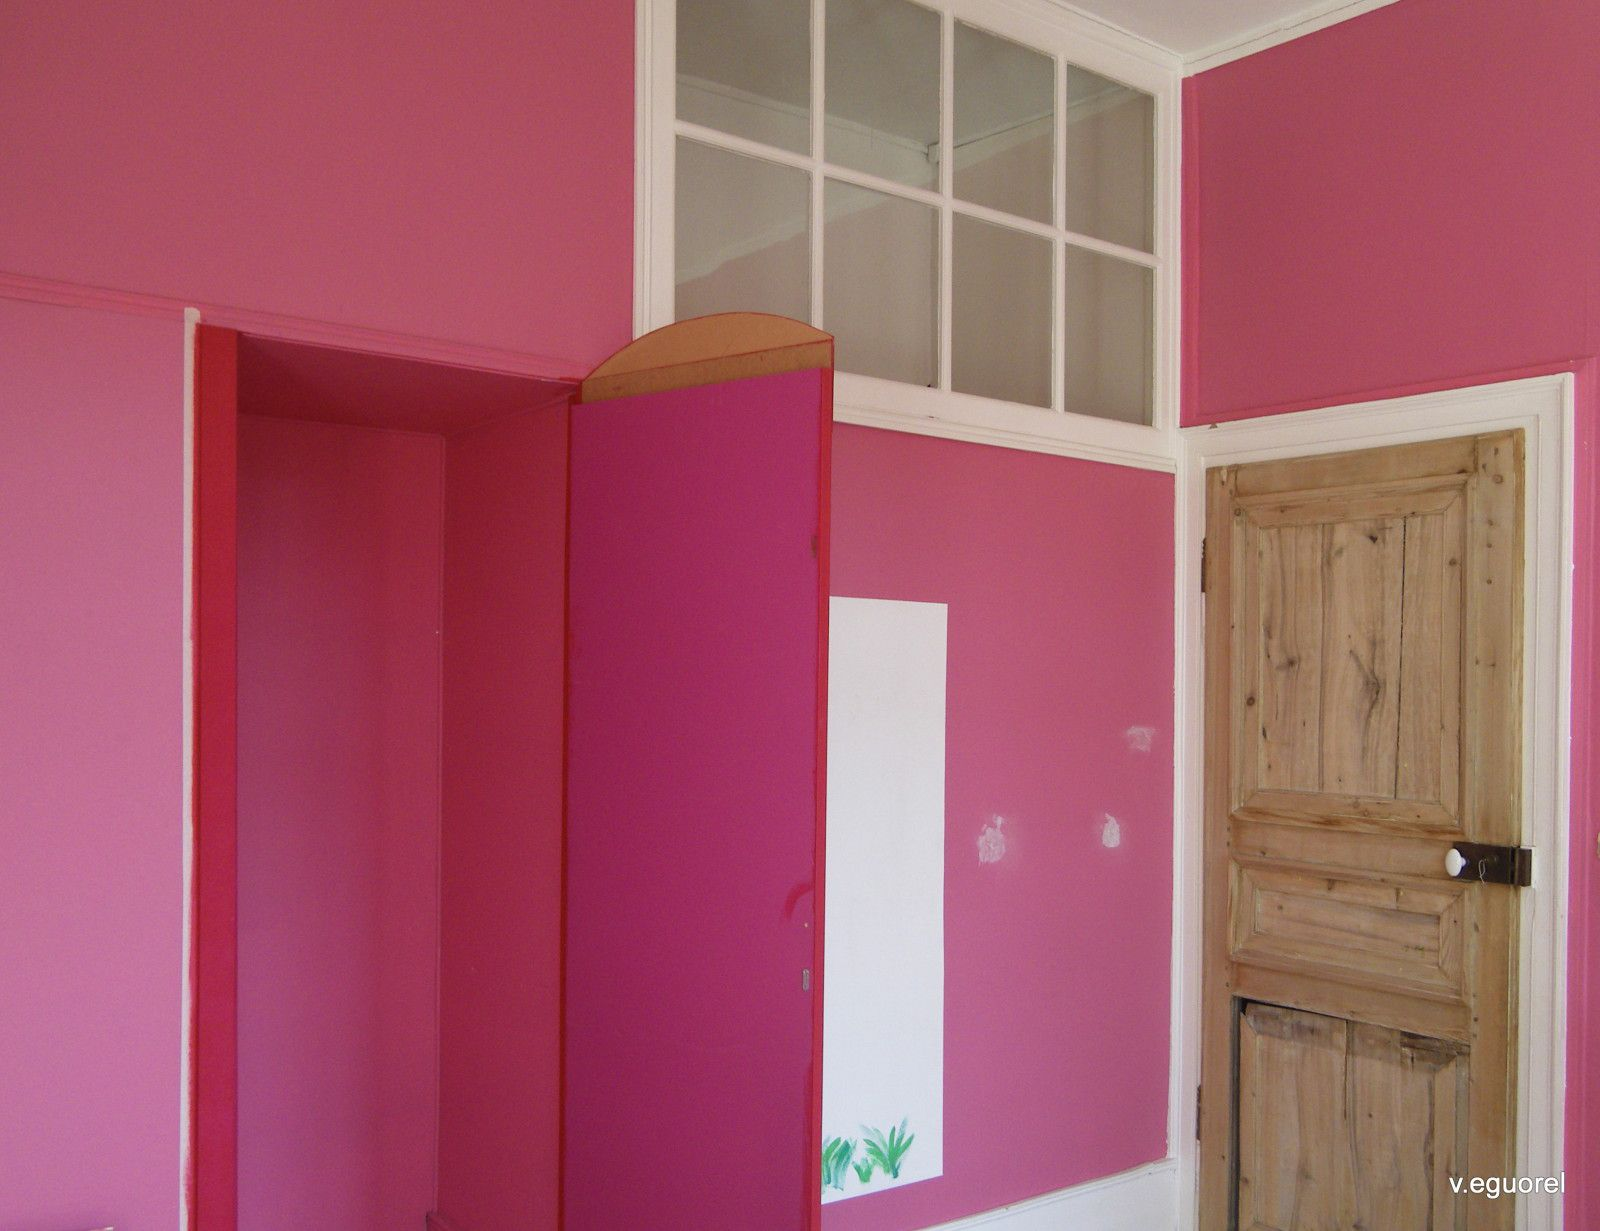 Relooking chambre ado meilleures images d 39 inspiration - Relooking chambre ado fille ...